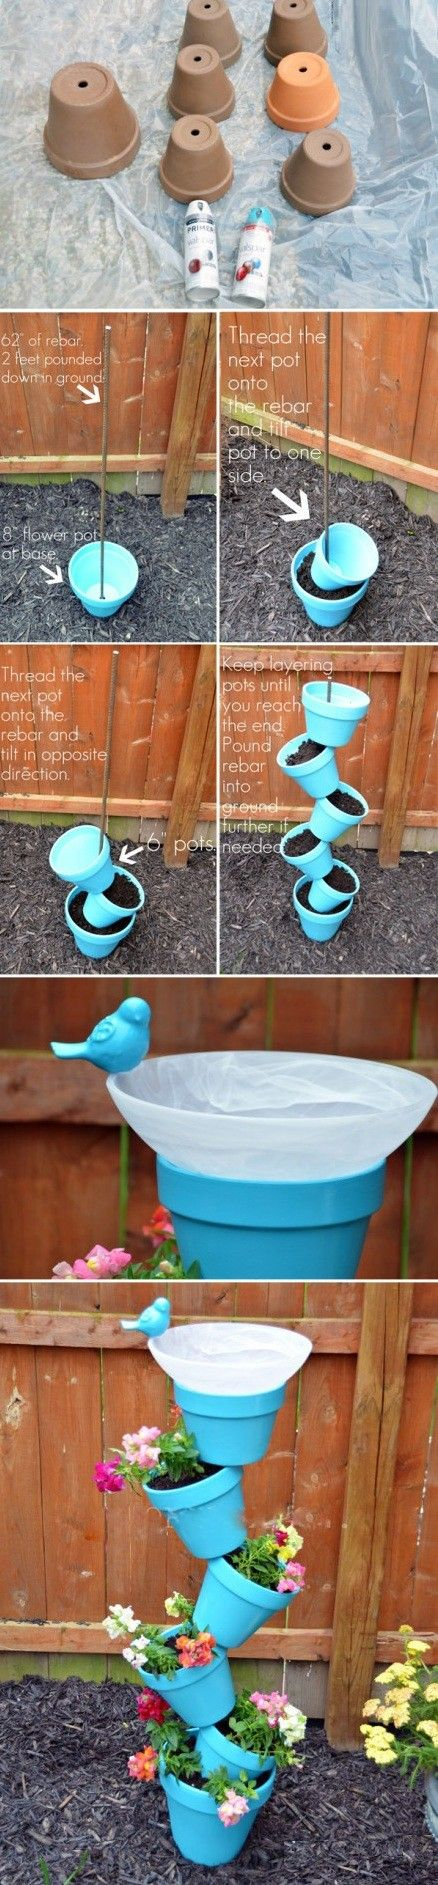 flower pot bird bath. I've always wanted to do flower pots like this, not sure if I'll put a bird bath on top though